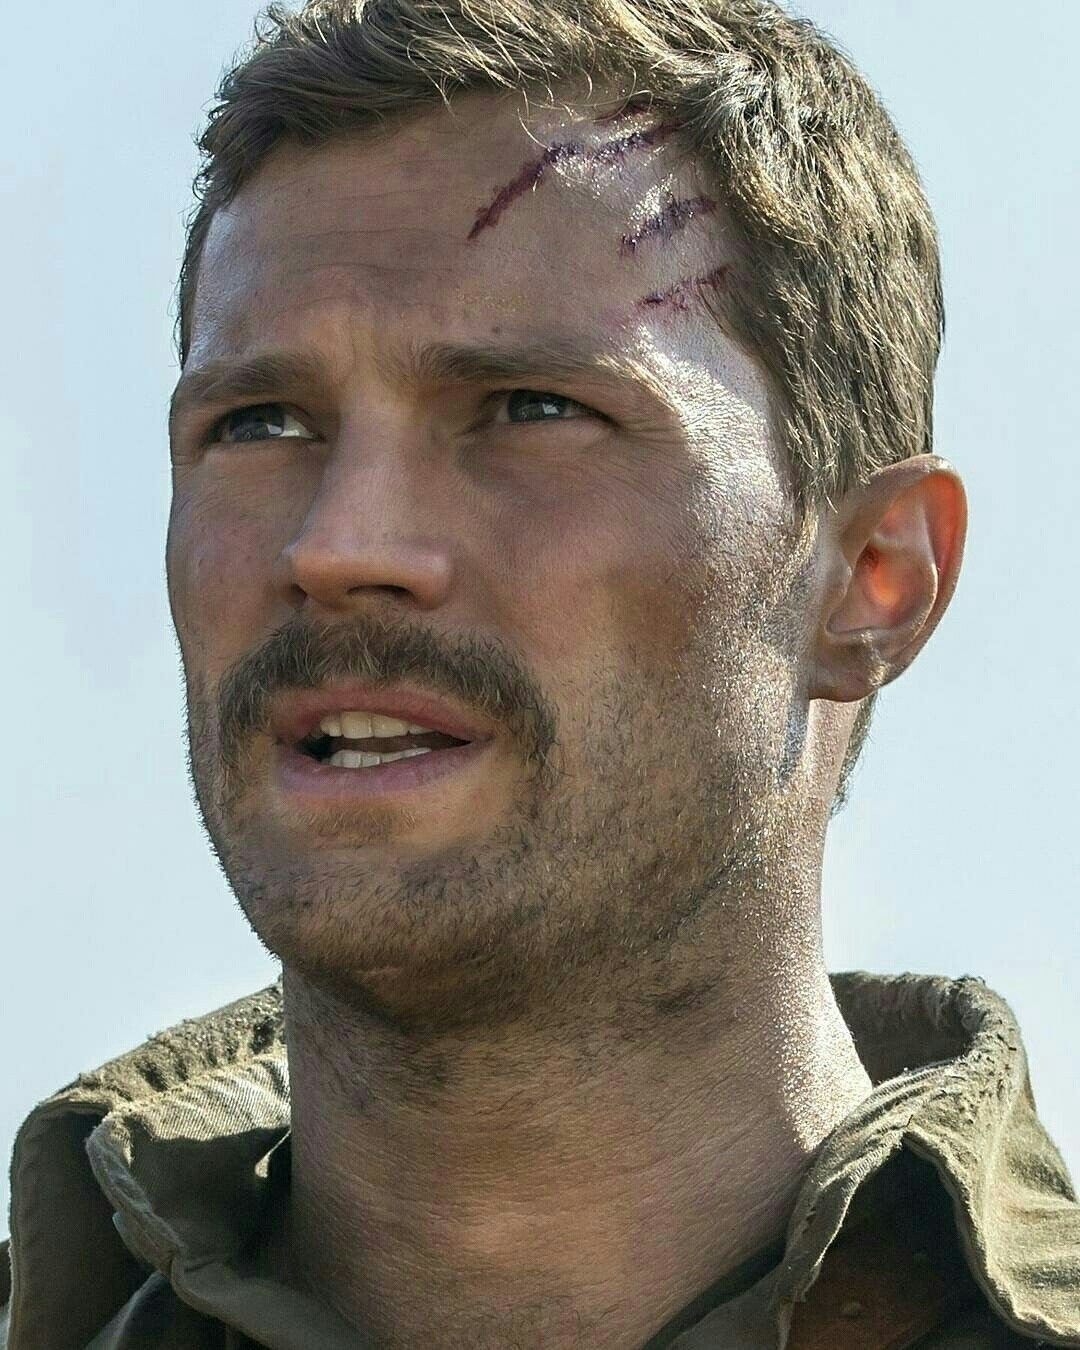 The Siege of jadotville jamie dornan